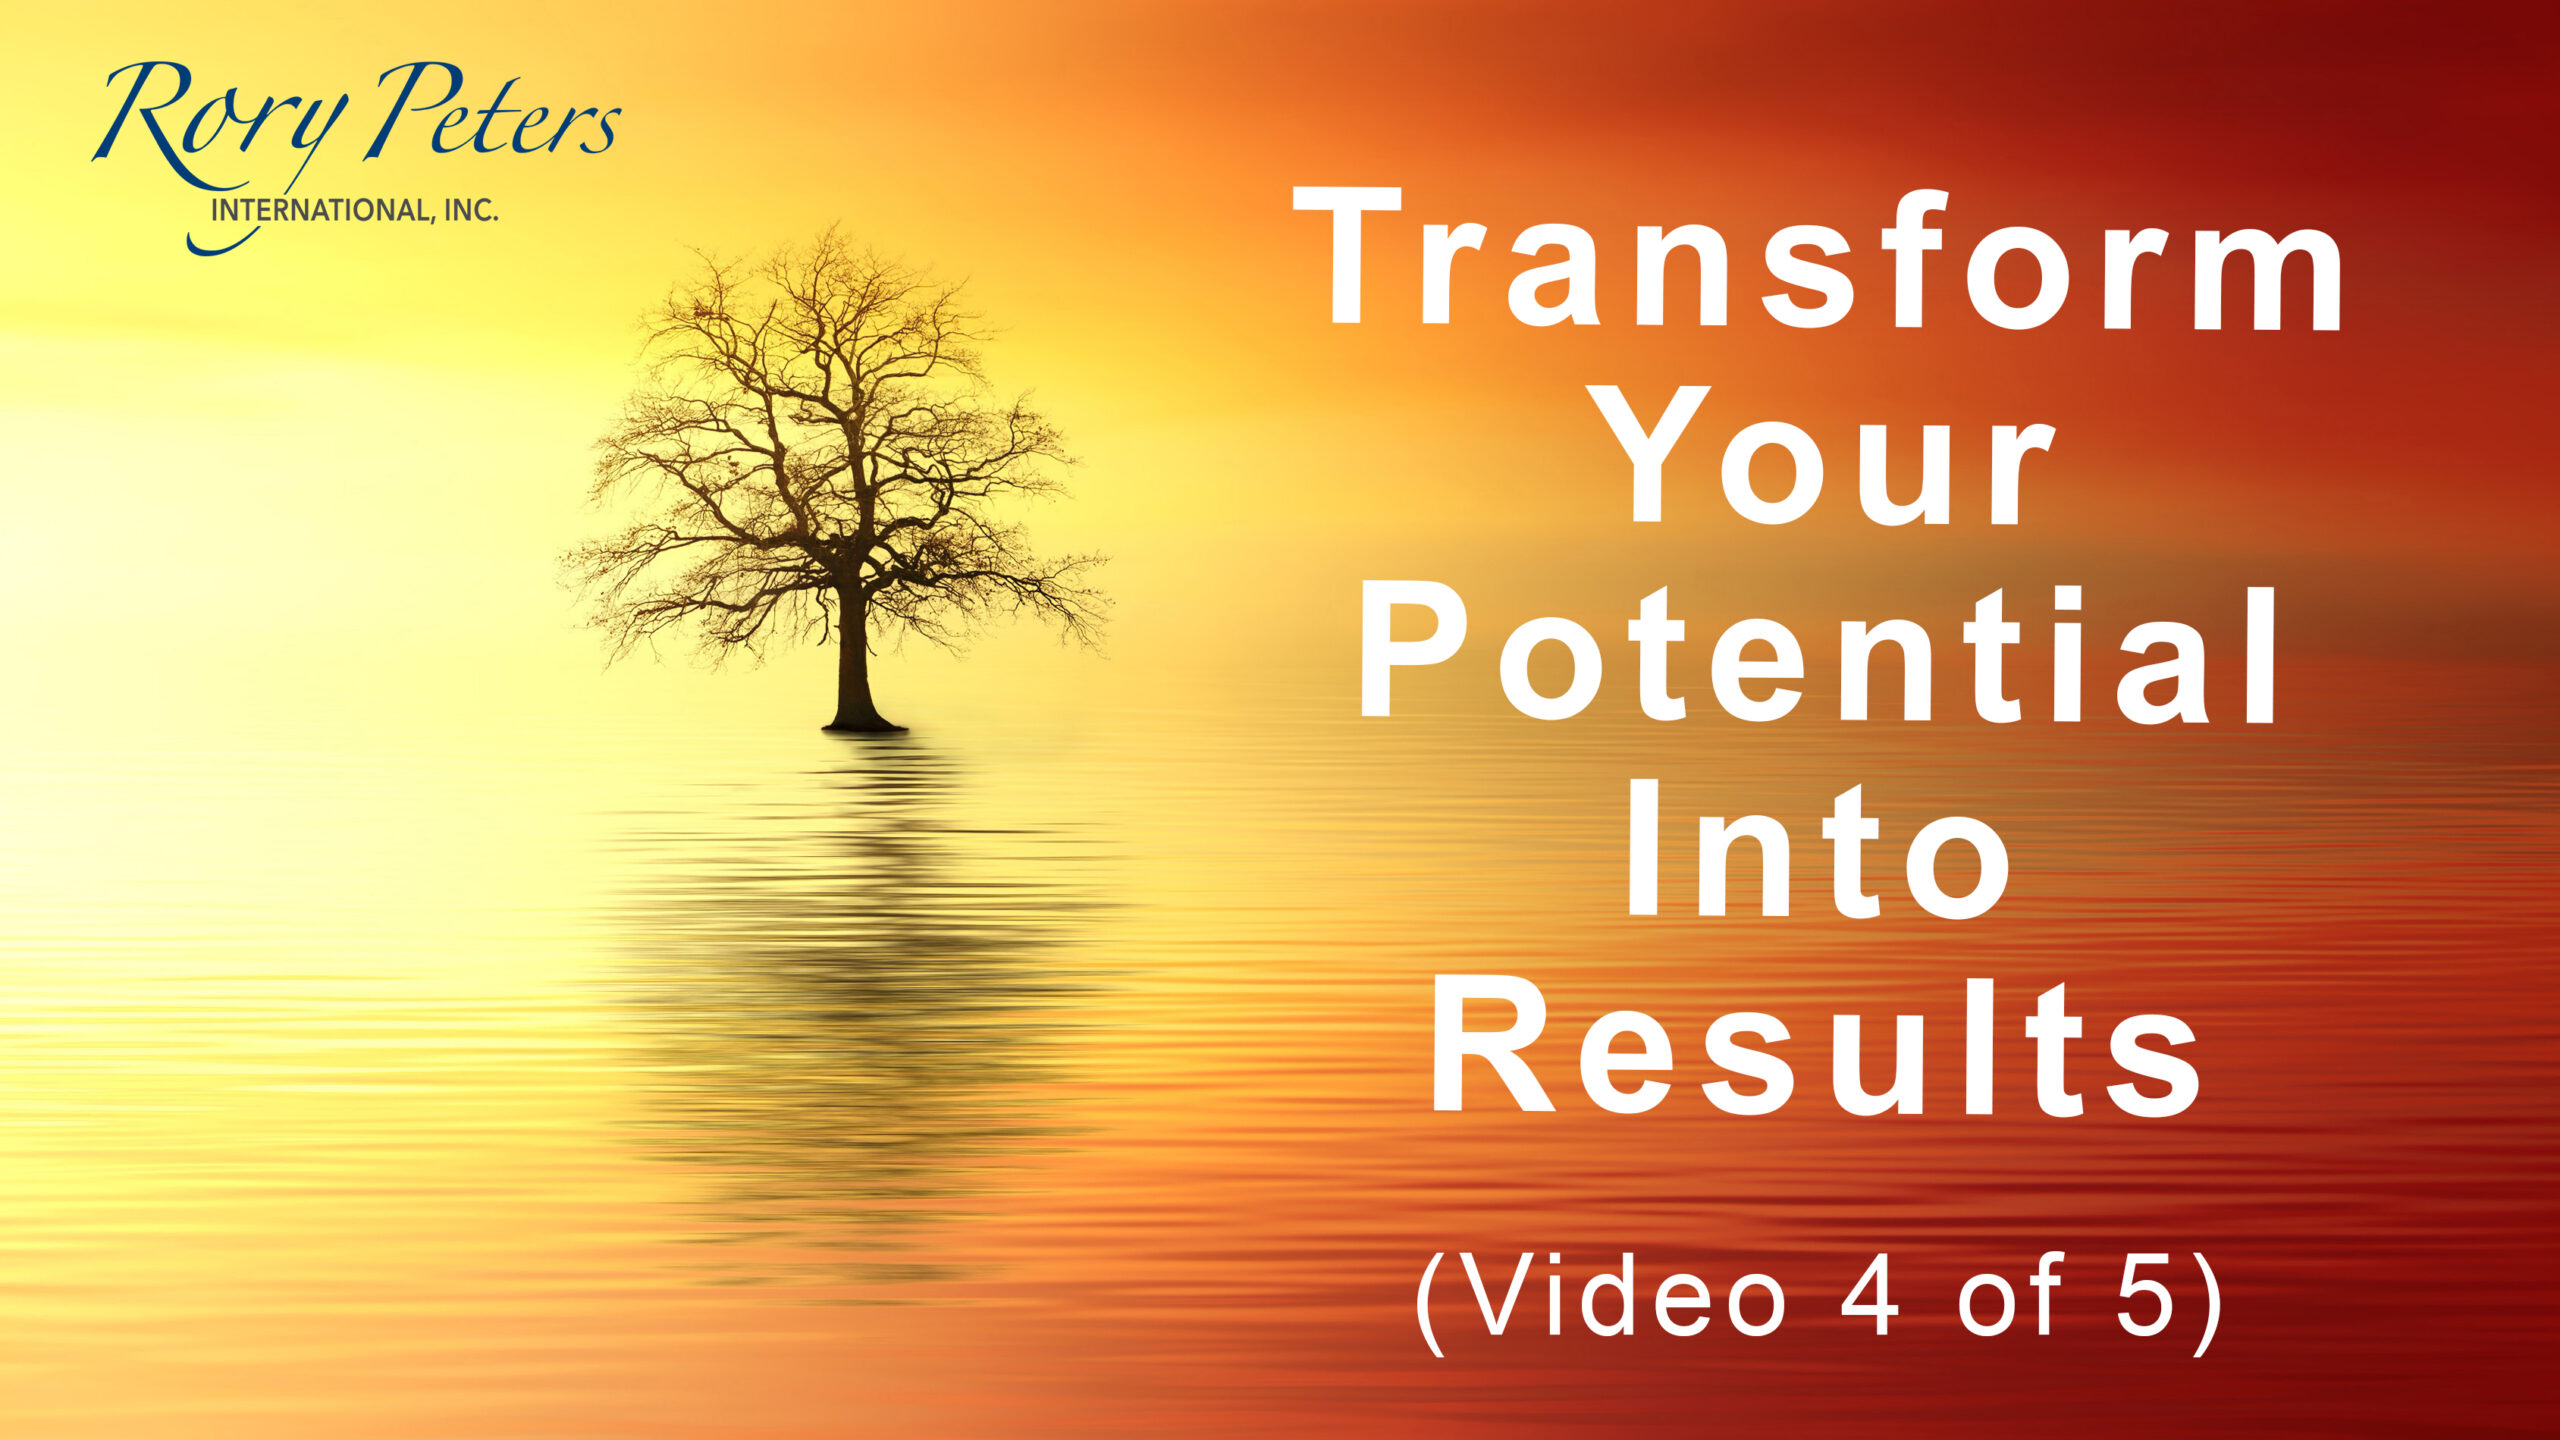 Transform Your Potential Into Results (1 of 5)Transform Your Potential Into Results (4 of 5)